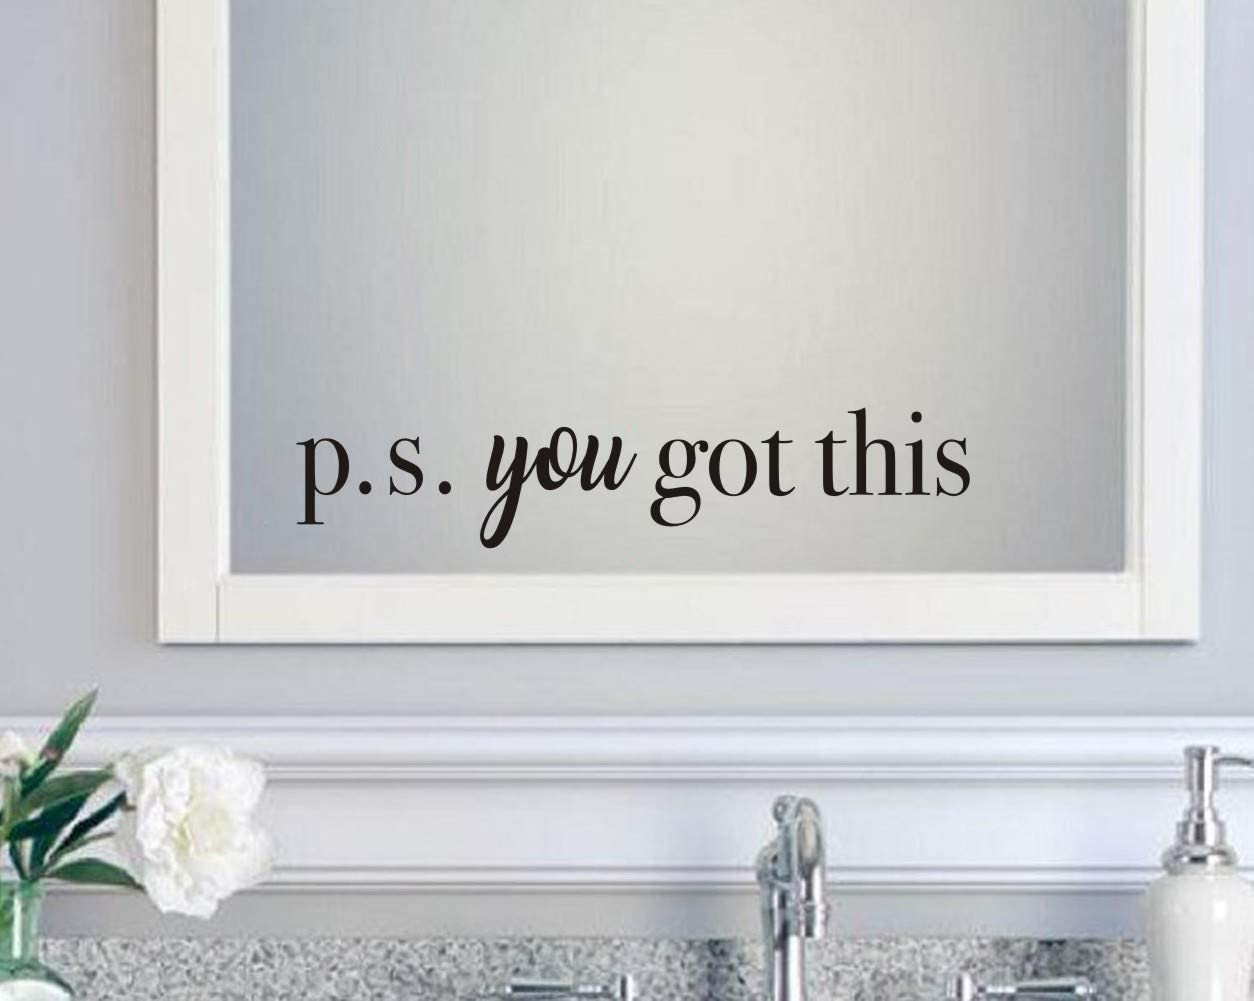 You Got This Wall Decal,Inspirational Quote Positive Attitude Vinyl Wall Sticker for Office Bathroom Mirror Bedroom Decor, Motivational Family Lettering Stickers Decorations, Black